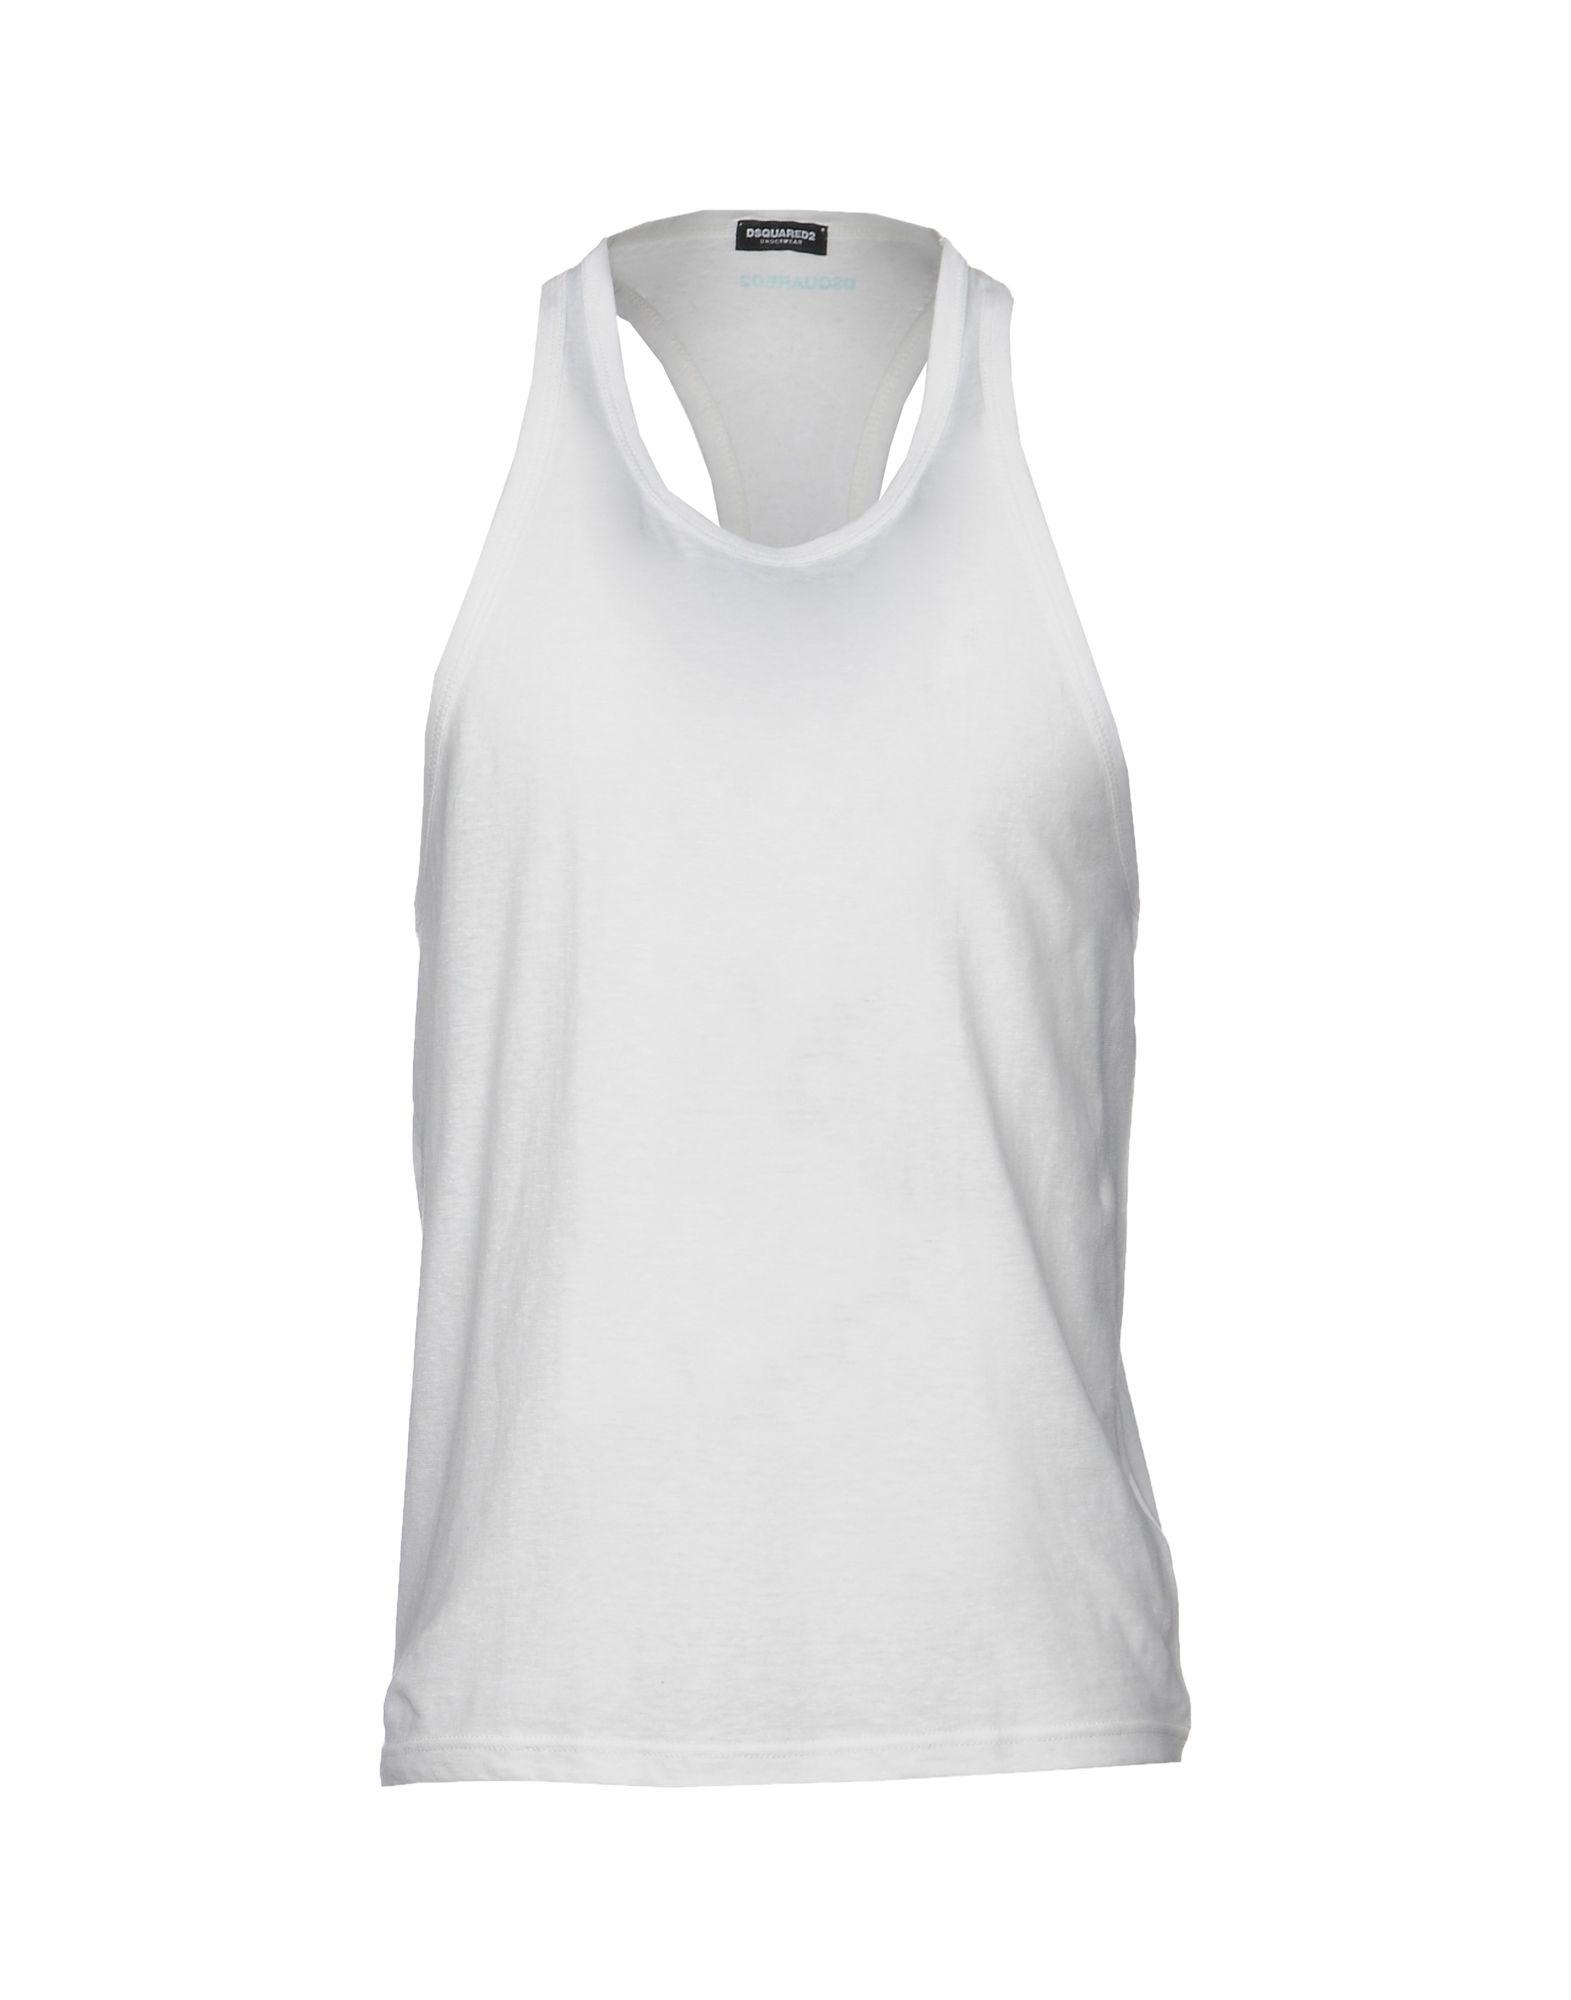 Lyst - Dsquared² Sleeveless Undershirt in White for Men a9a070b46